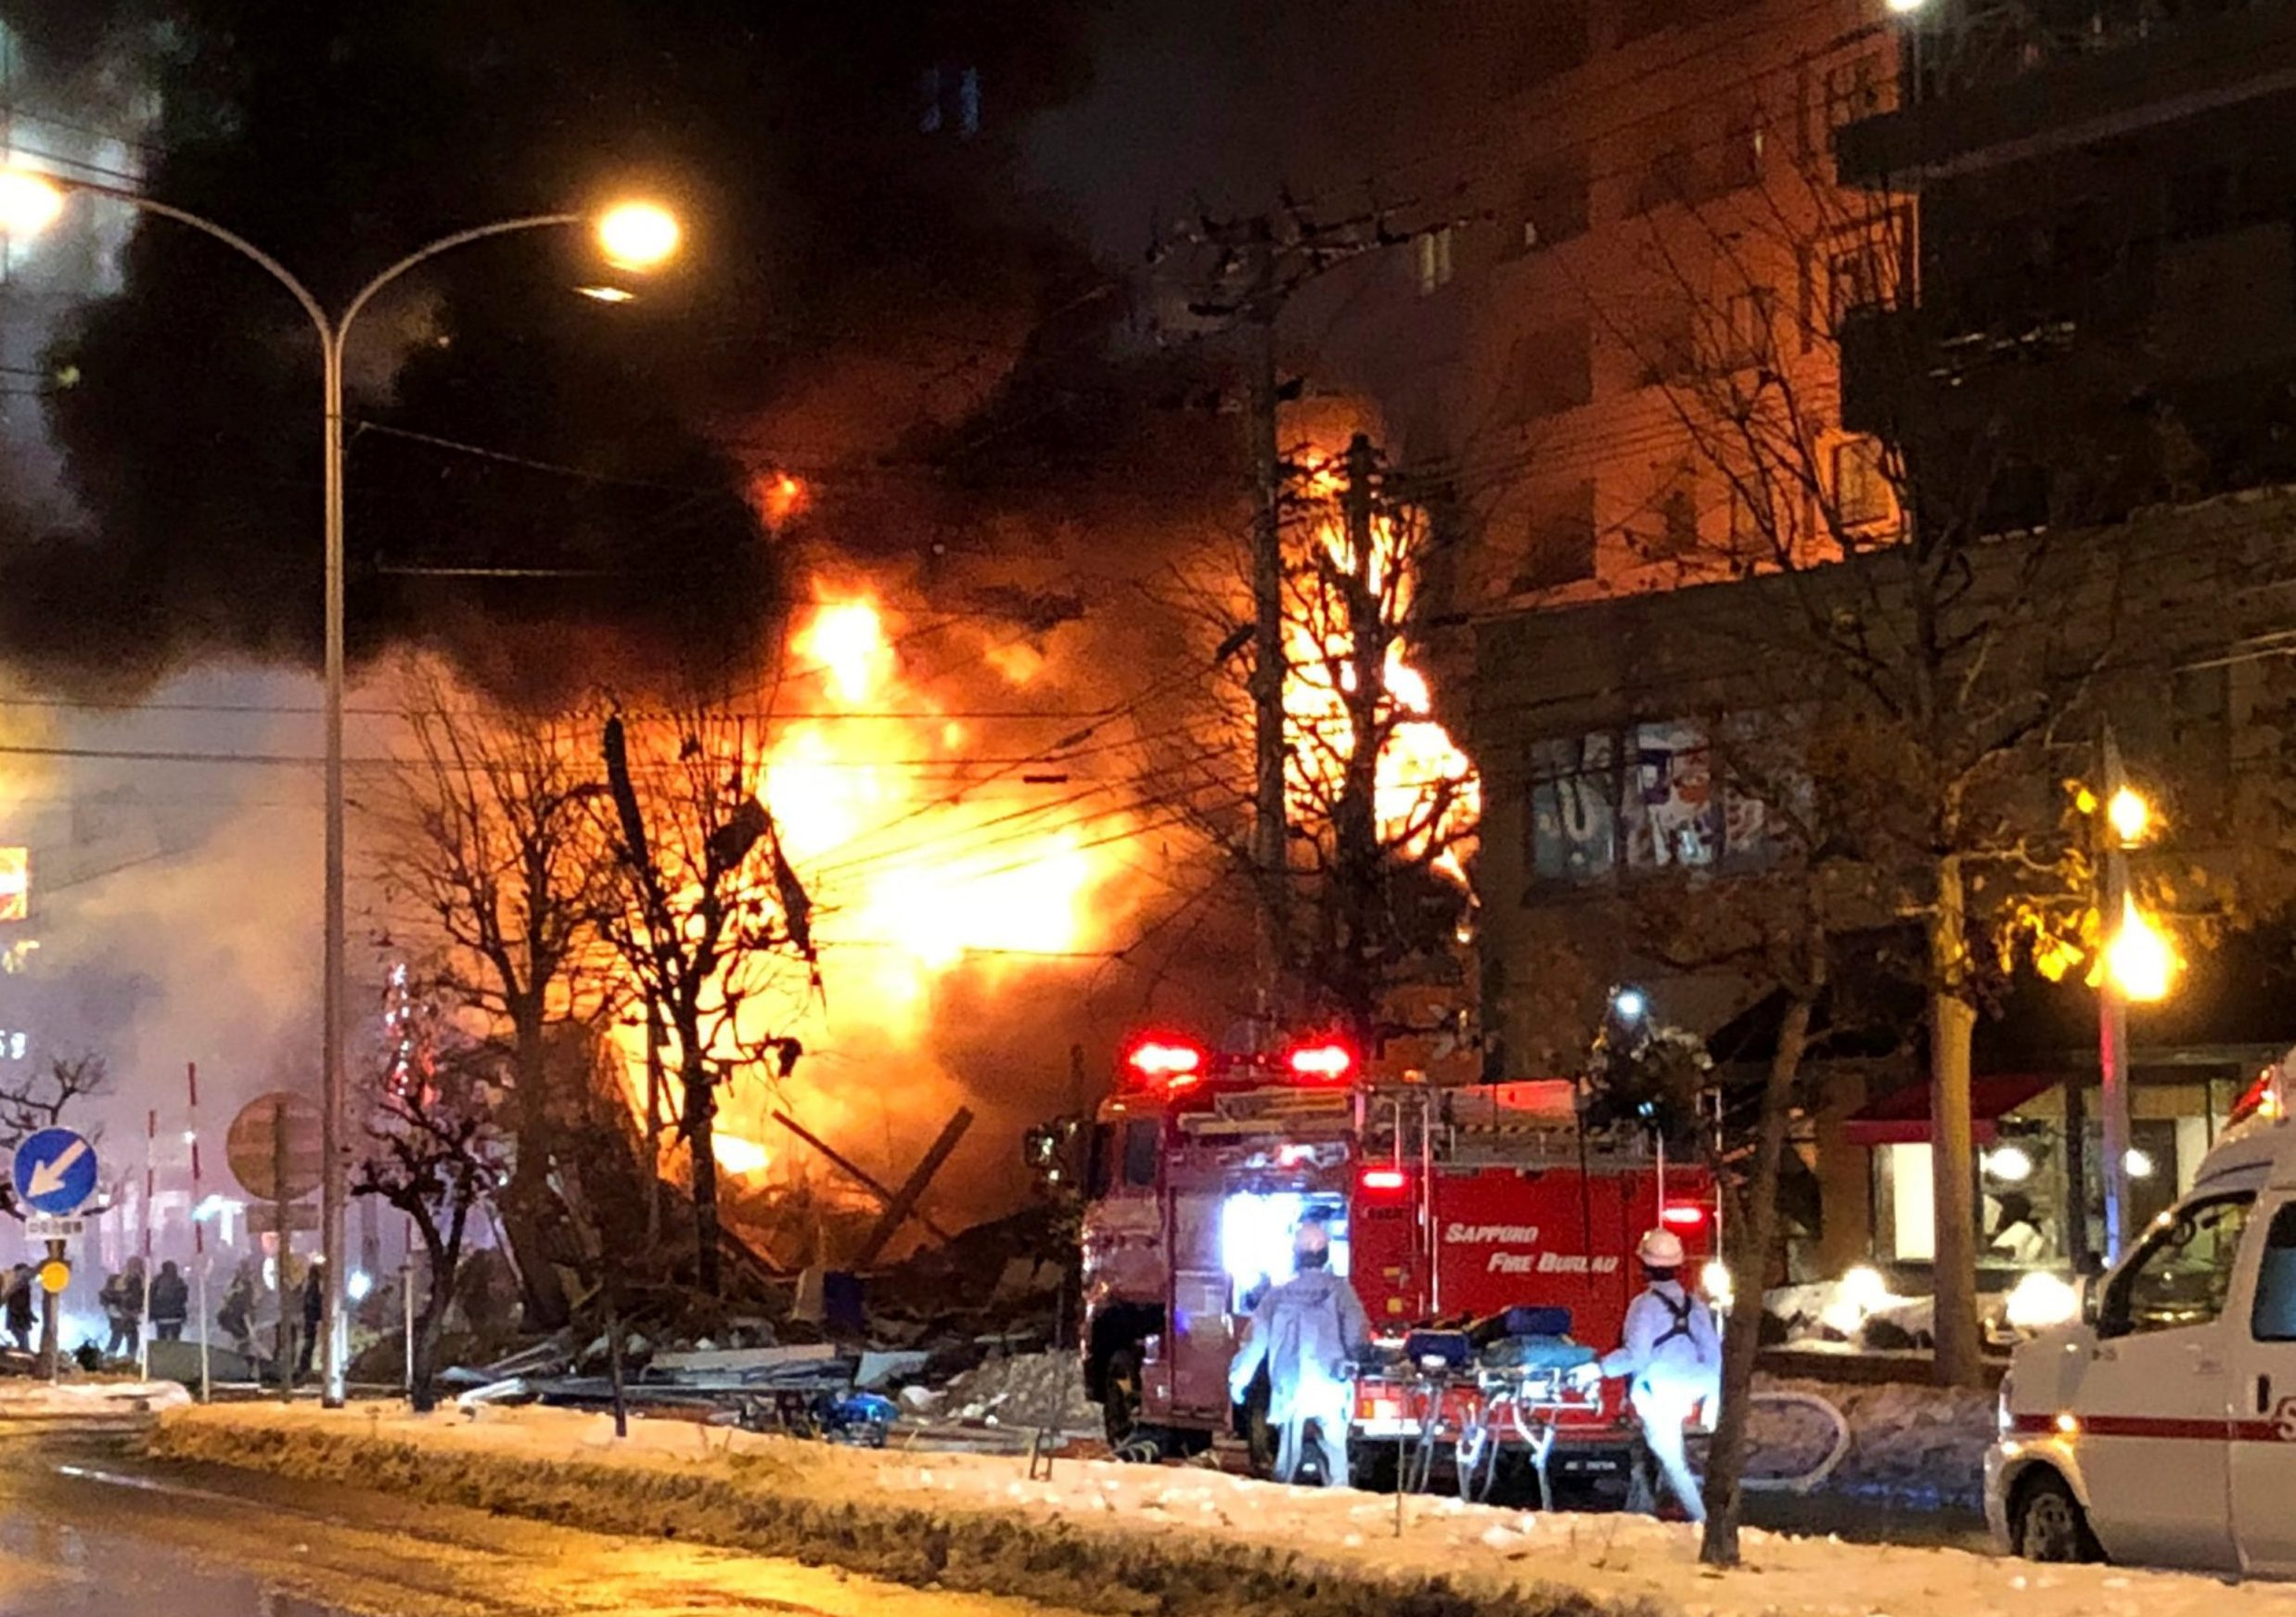 A view of a site of an explosion at a bar in Sapporo, Japan, December 16, 2018 in this still image taken from a video obtained from social media. TWITTER/ @KEIBAPANDRA/via REUTERS THIS IMAGE HAS BEEN SUPPLIED BY A THIRD PARTY. MANDATORY CREDIT. NO RESALES. NO ARCHIVES.